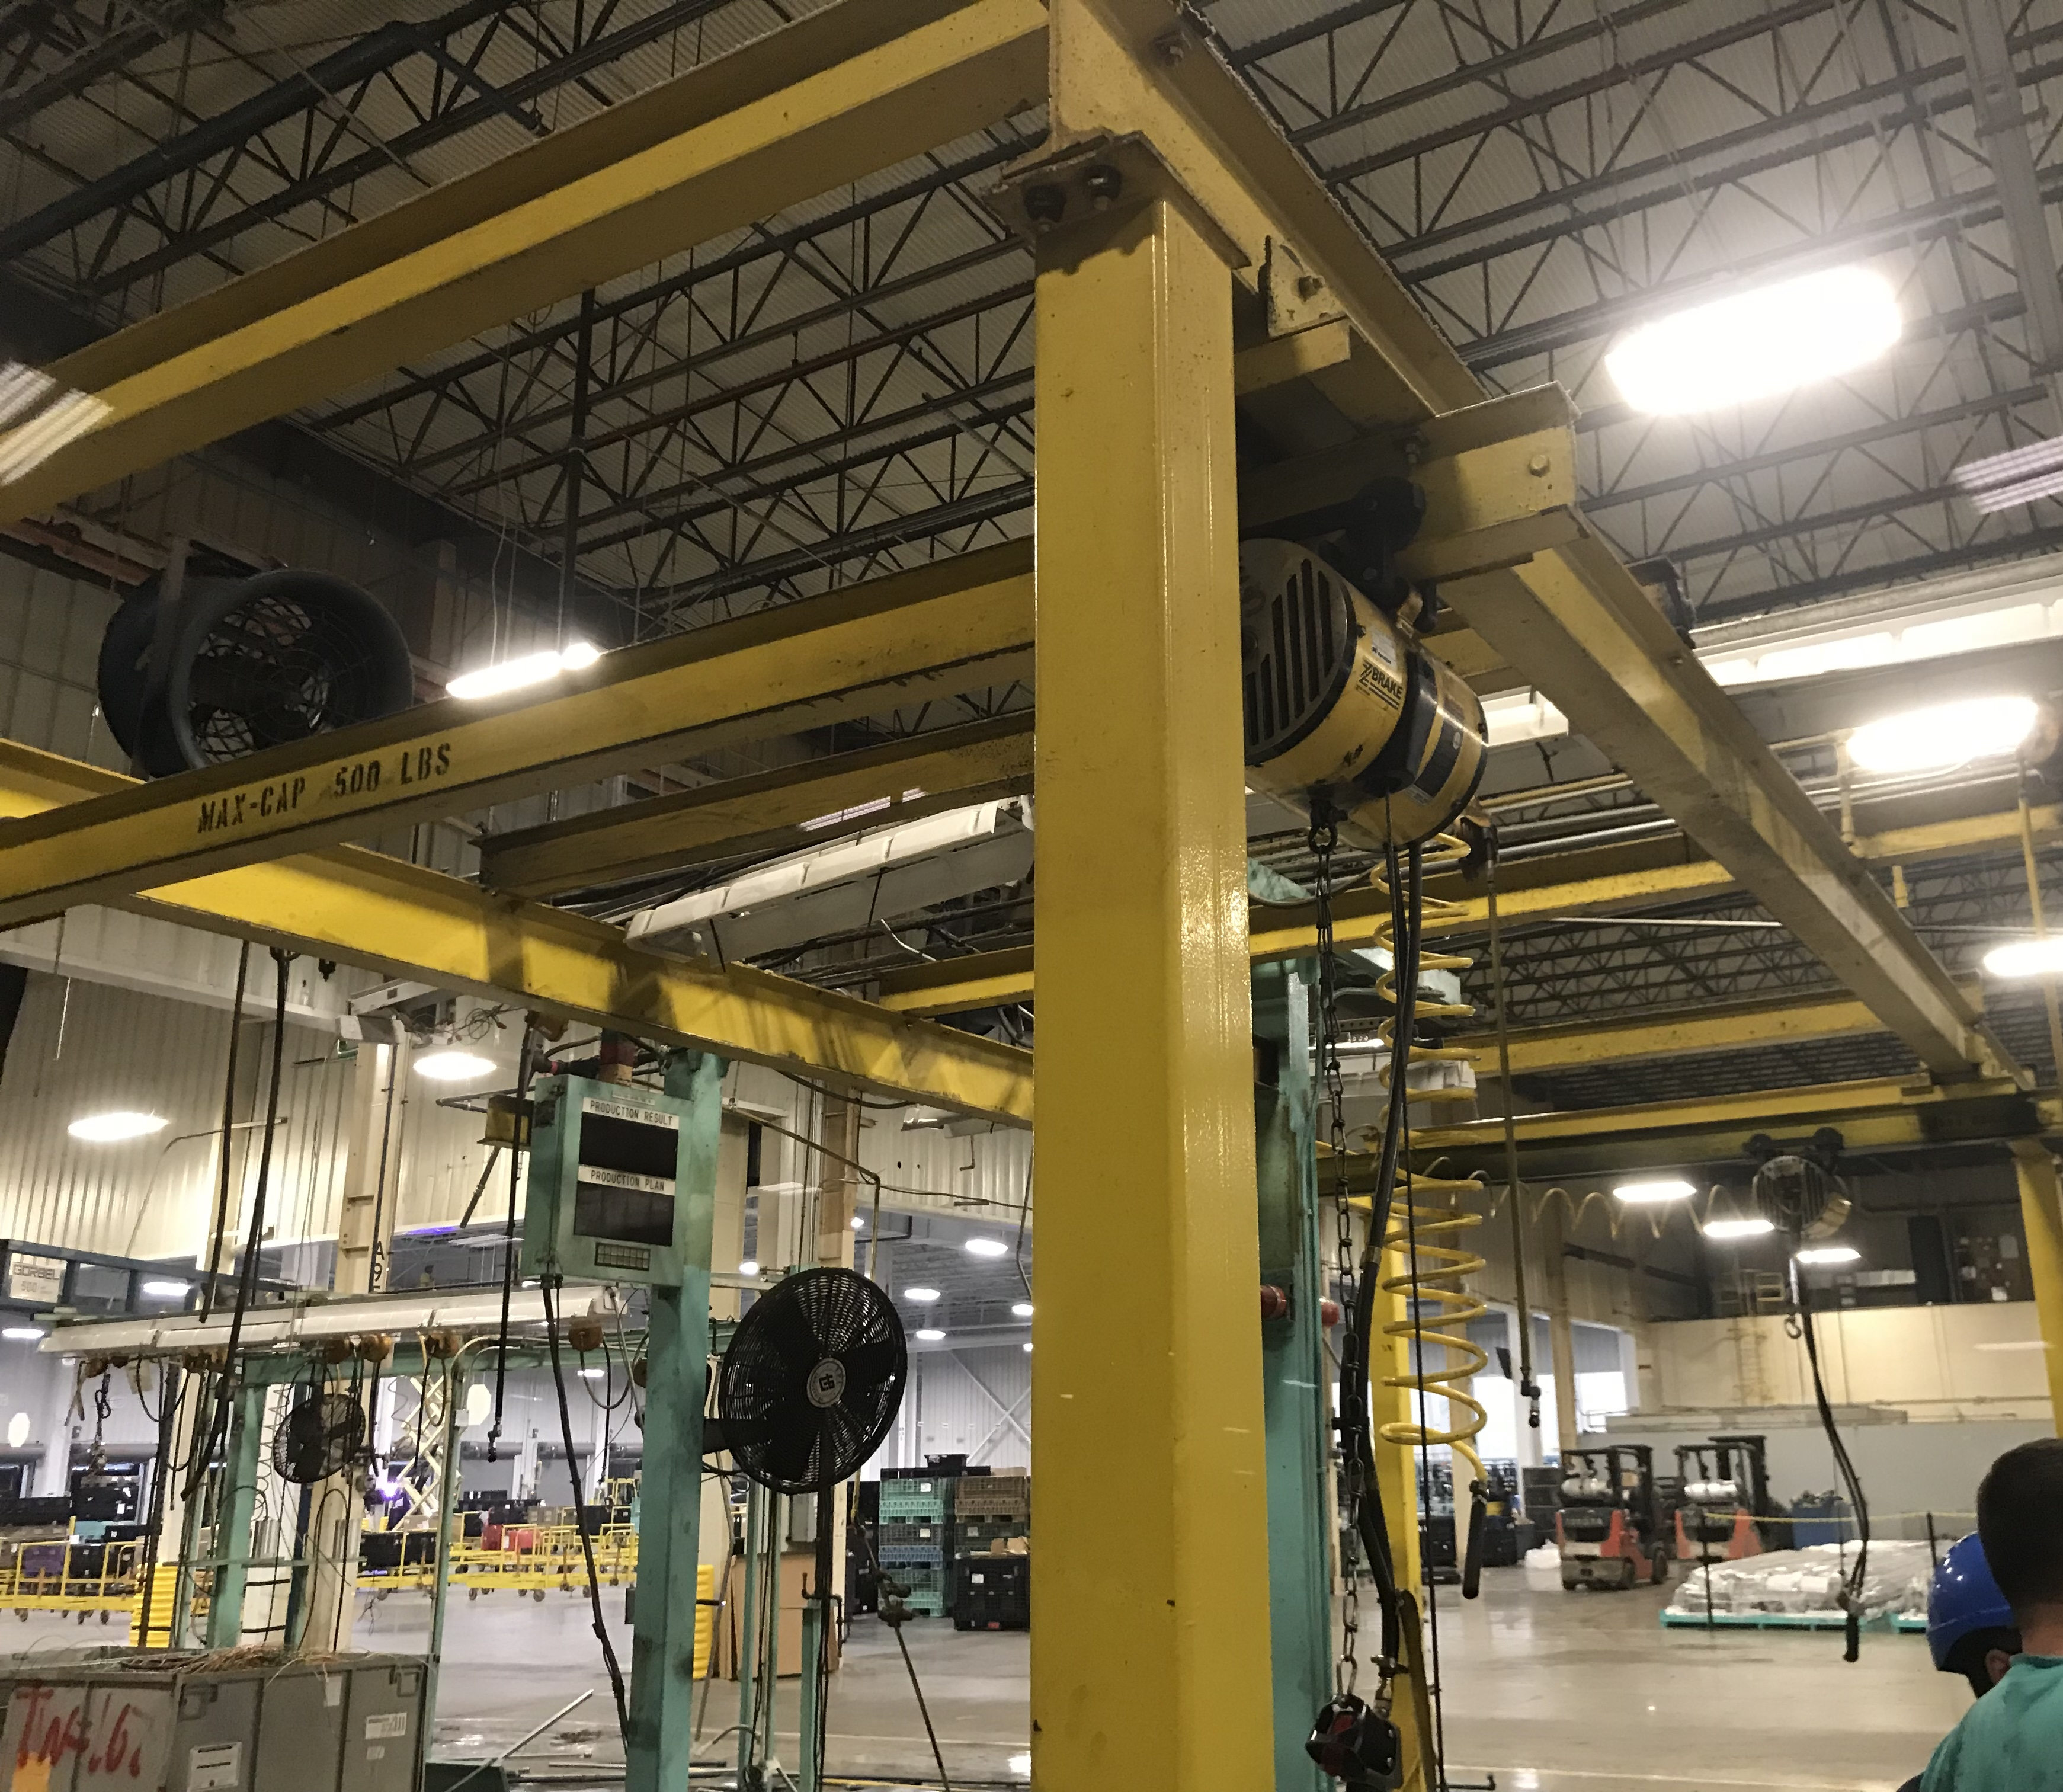 Lot 39 - 1000 lb Free Standing Bridge Crane w Hoists